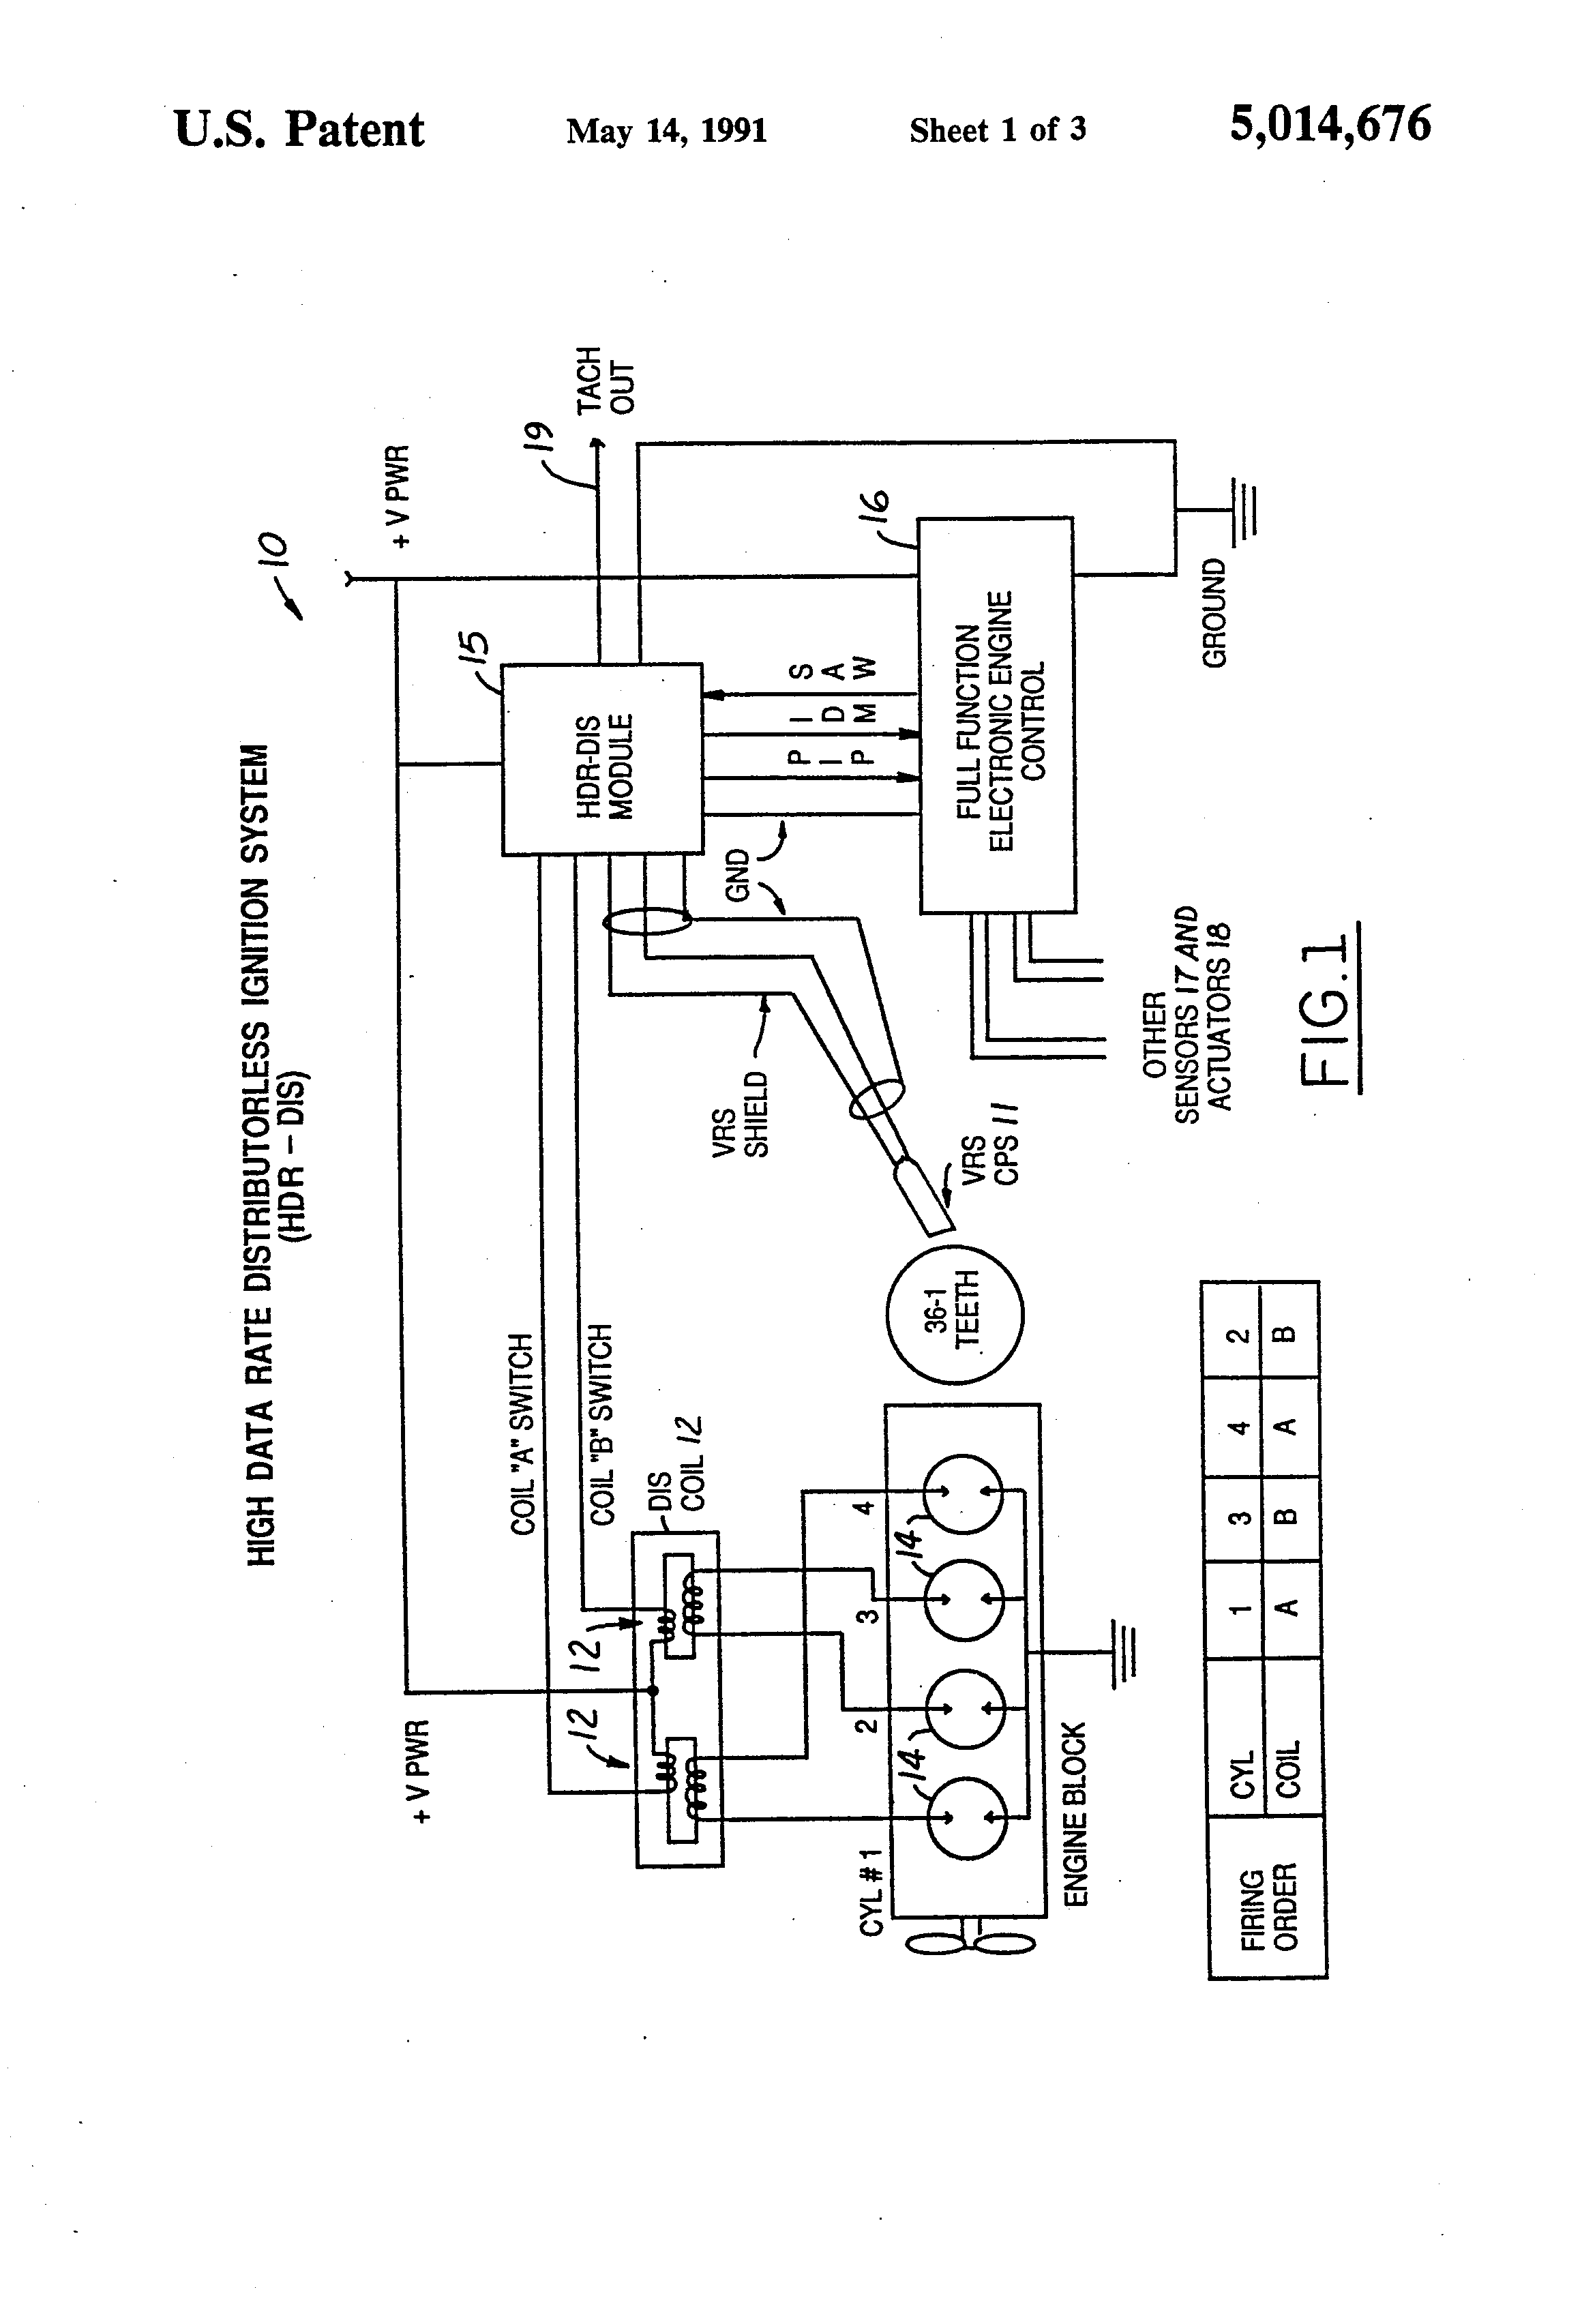 US5014676 1?resize=665%2C977 delphi dea355 stereo wiring diagram delphi stereo system, delphi international 4300 radio wiring diagram at fashall.co